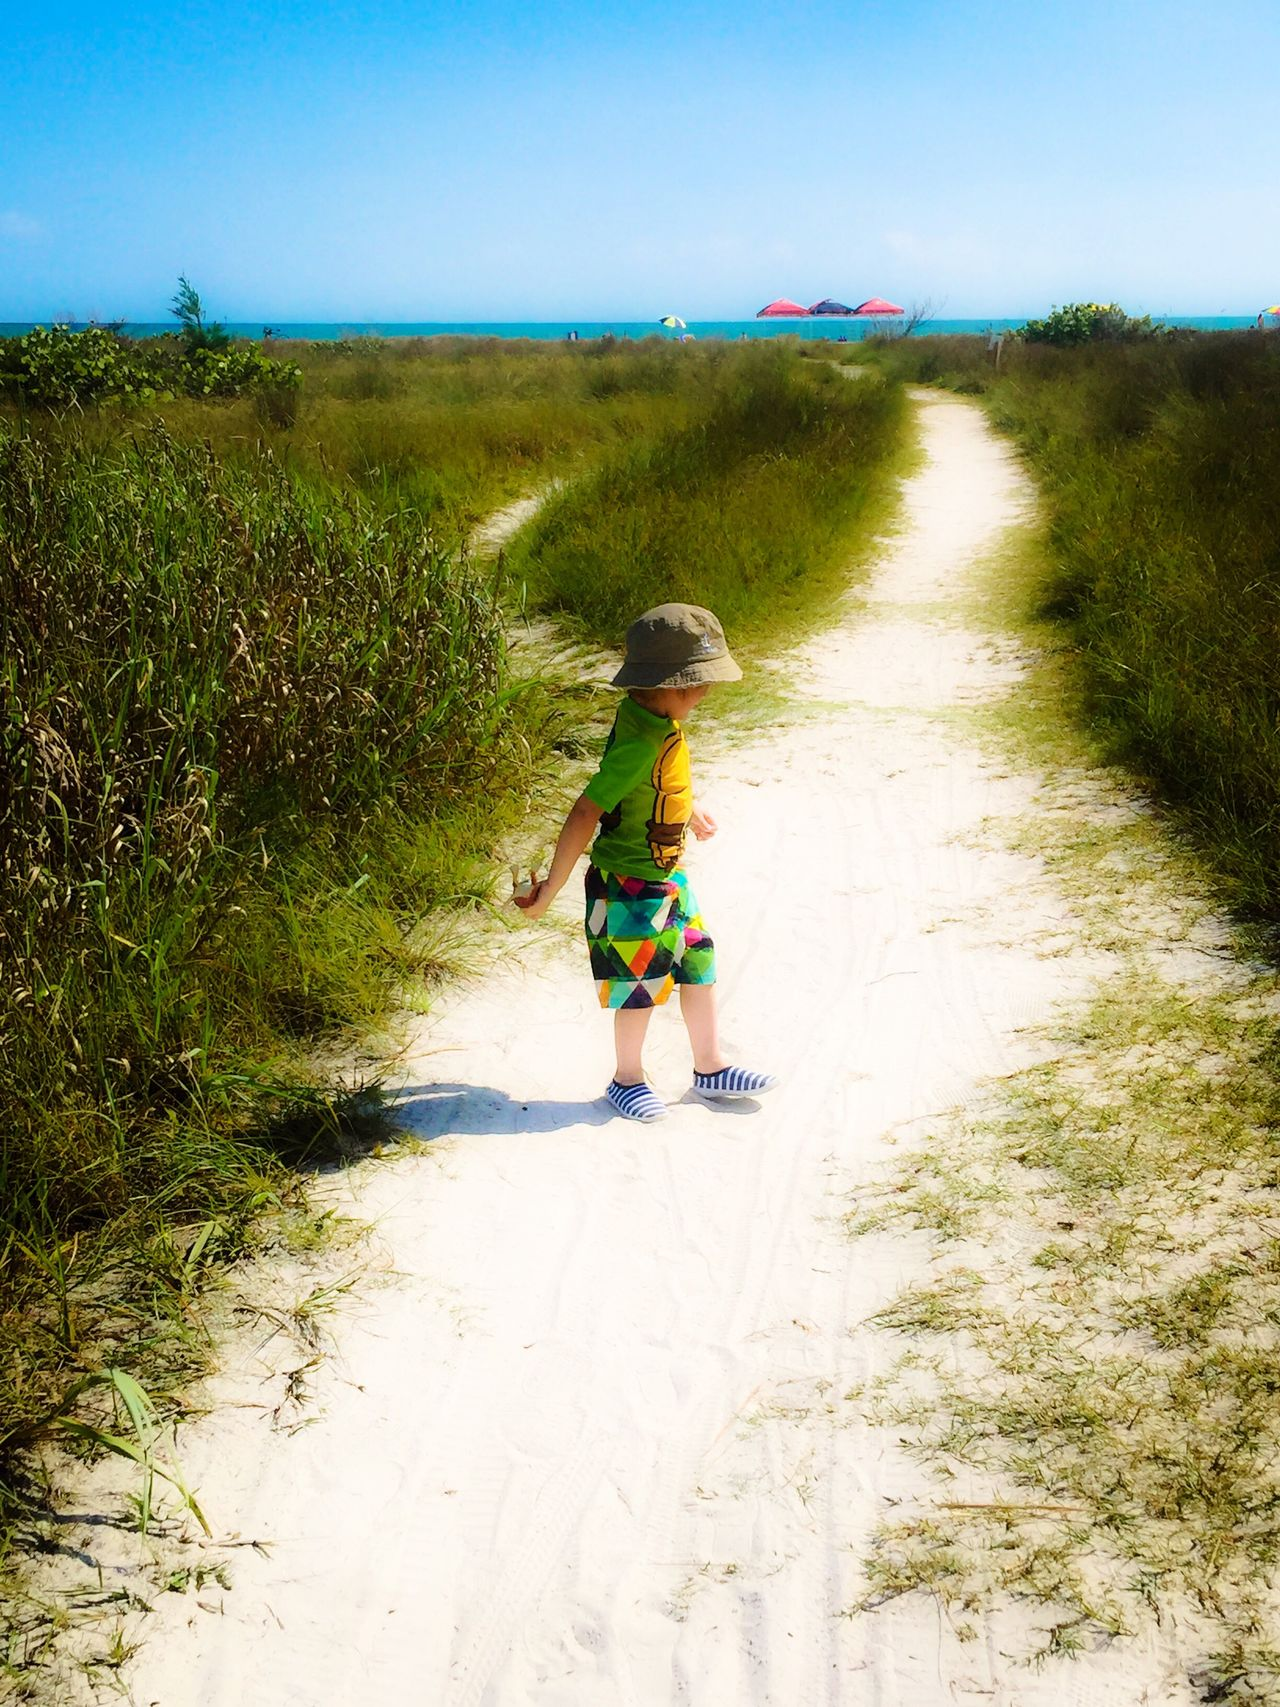 Full Length Grass Green Sand Grandson Beach Nature Nature Is My Best Friend Beauty In Nature The Way Forward Plant Sunlight Landscape Day Outdoors Tadaa Community Sky Grassy Blue Sea Tranquility Diminishing Perspective Running Portrait Of A Toddler Nature Photography